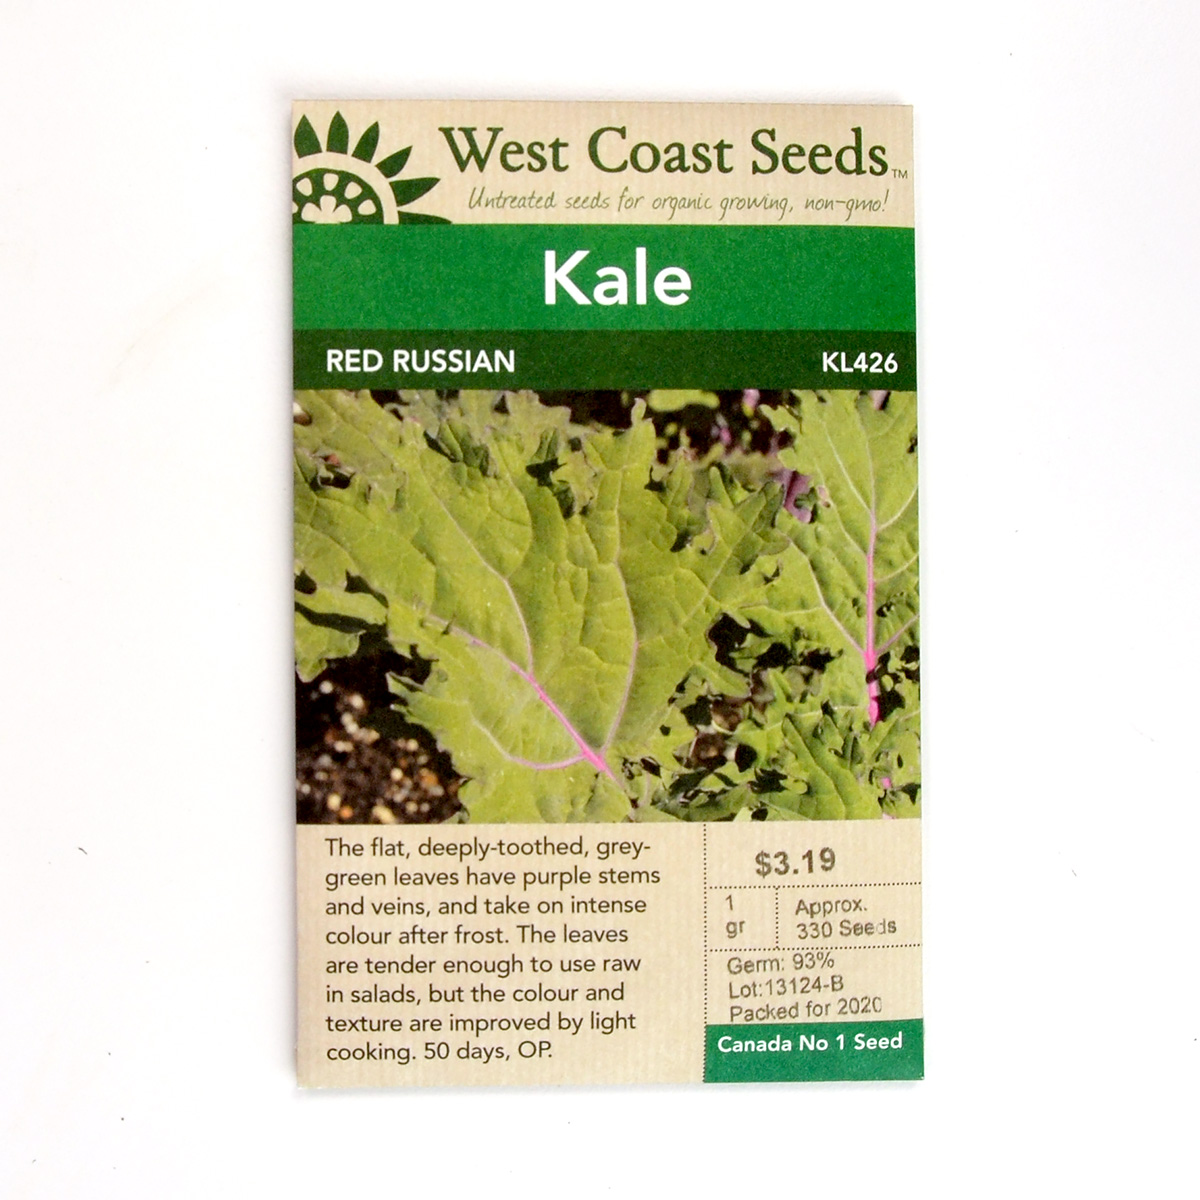 Kale Red Russian Seeds KL426